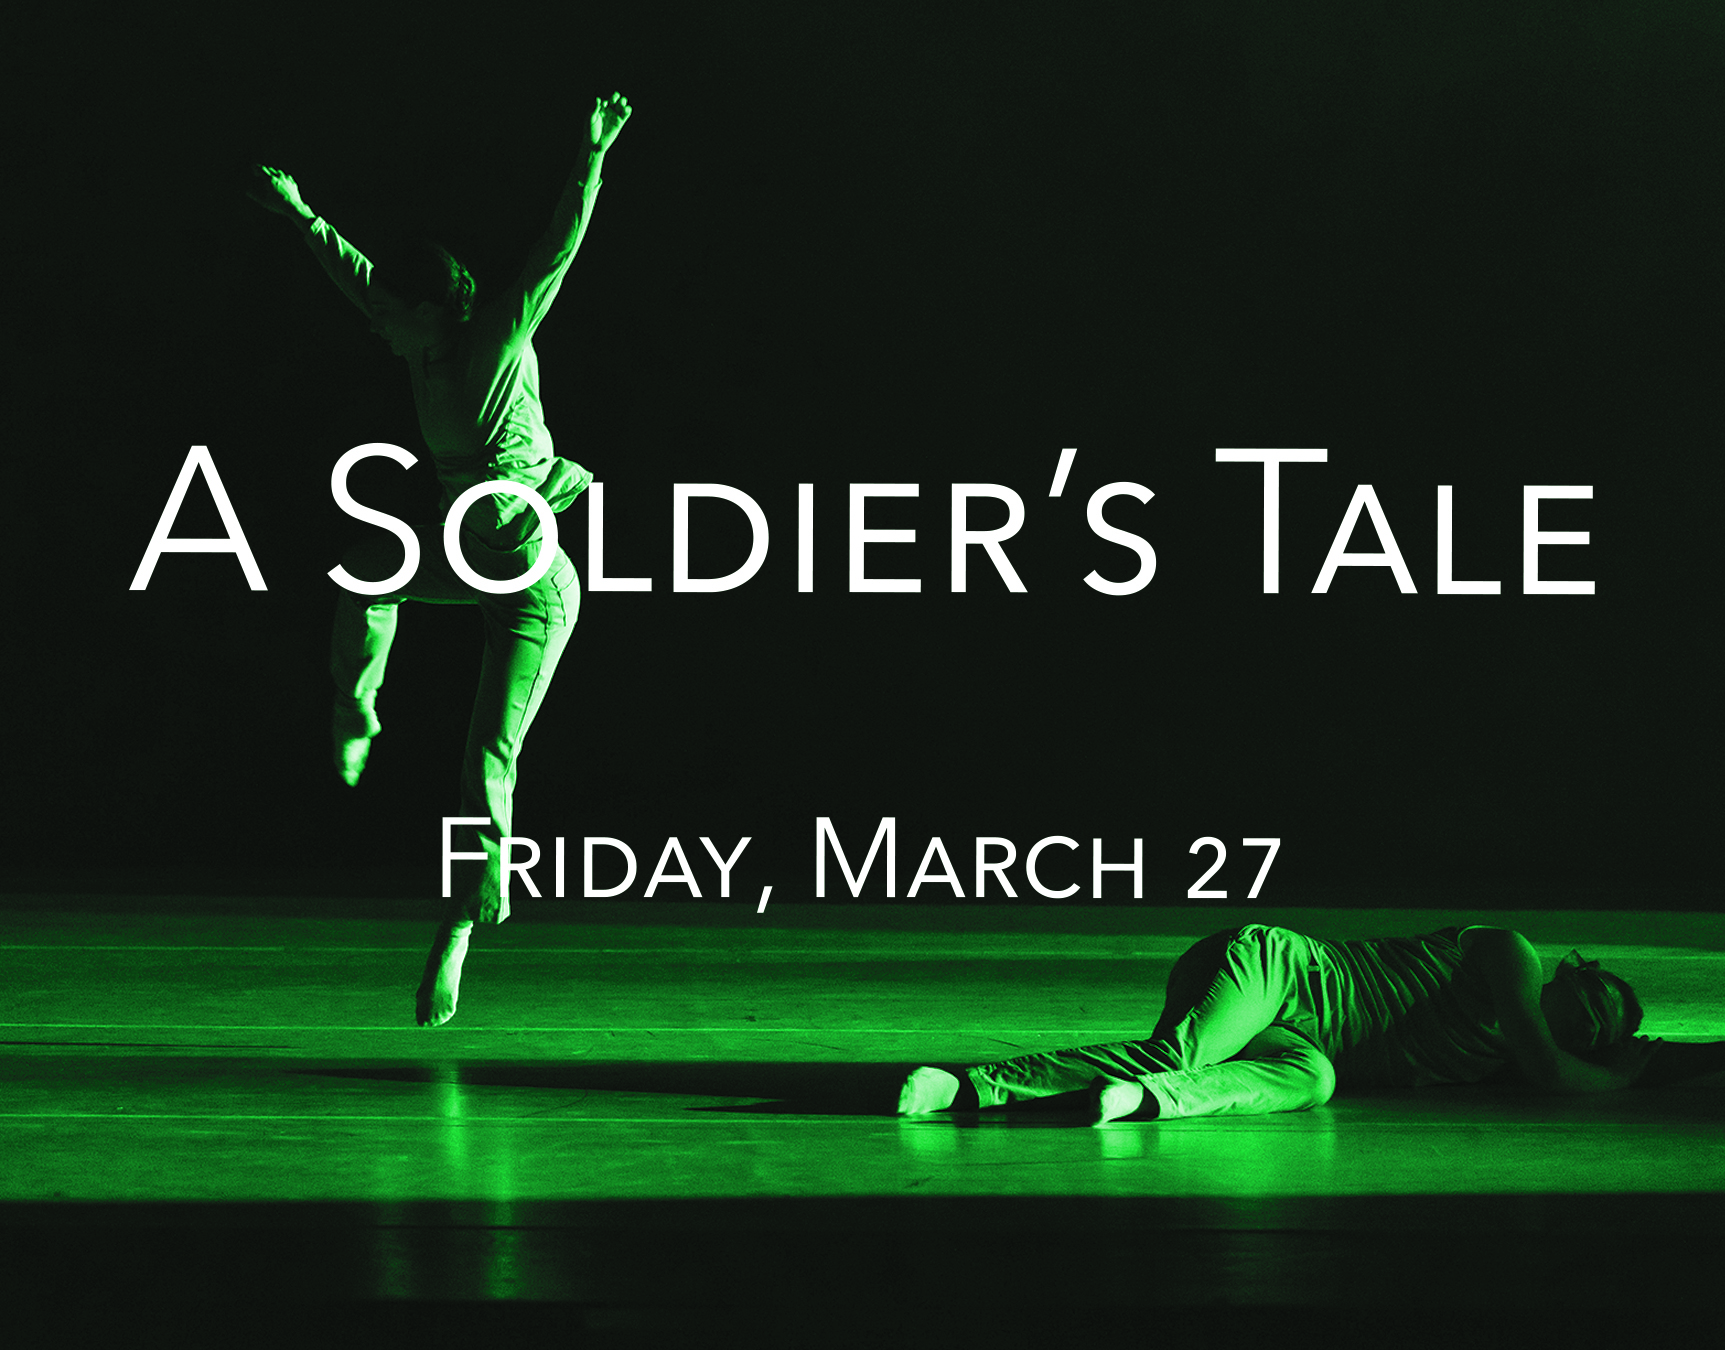 A Soldier's Tale - Friday, March 27 | 7:00pmExperience the synergy between Eisenhower Dance Detroit and the Detroit Chamber Winds and Strings as these two Detroit gems perform together at the iconic DIA. This exciting collaboration reimagines Stravinsky's famous post-WWI score, A Soldier's Tale, with a contemporary take on the classic story of greed, passion, and death.FREE EVENTInvitation only VIP Reception during intermissionDetroit Institute of the Arts5200 Woodward Ave, Detroit, MI 48202